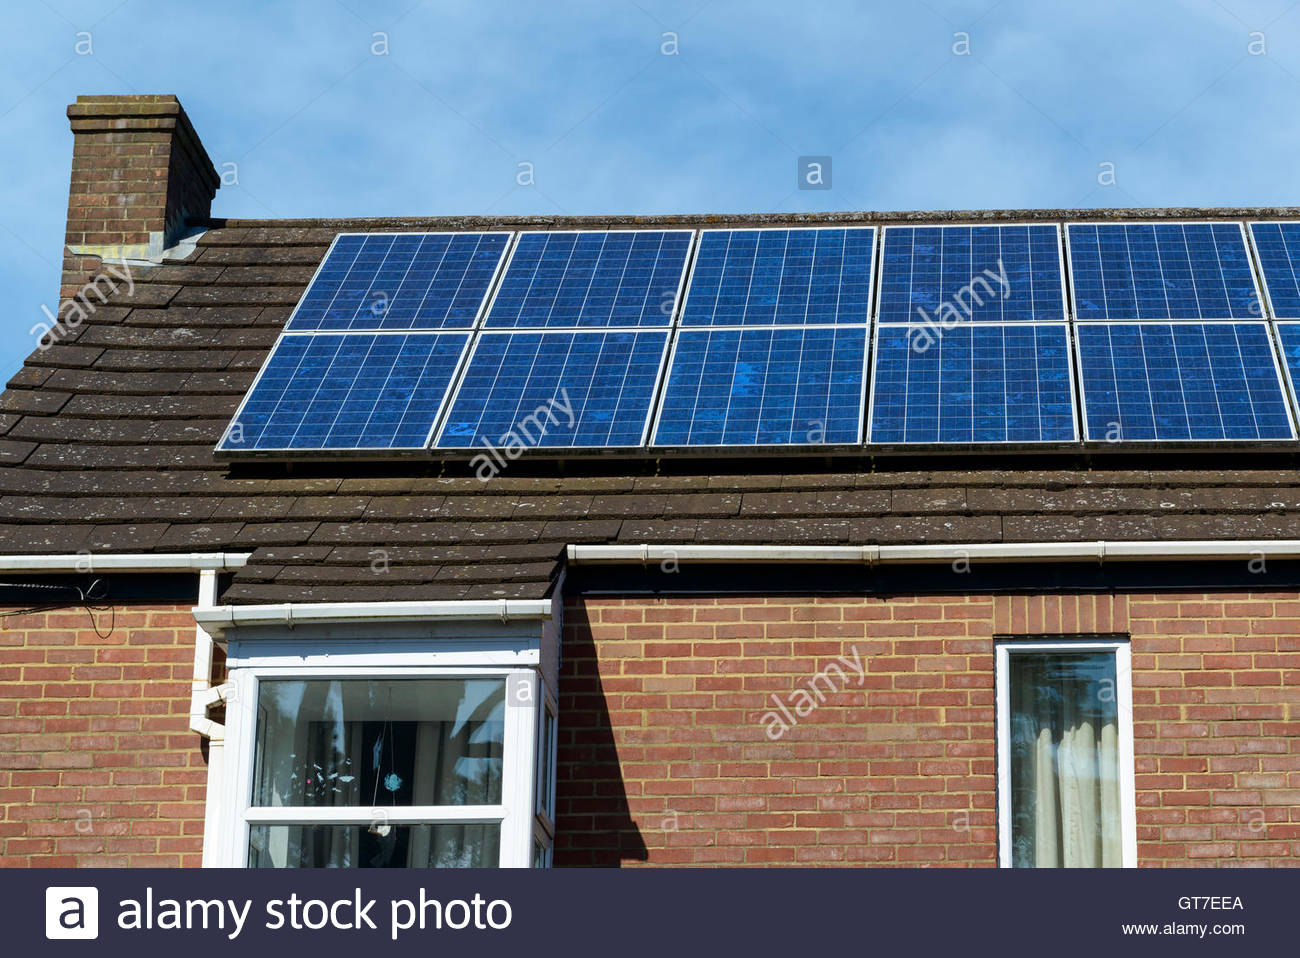 Solar panels on house roof, Salisbury, Wiltshire, England UK - Stock Image